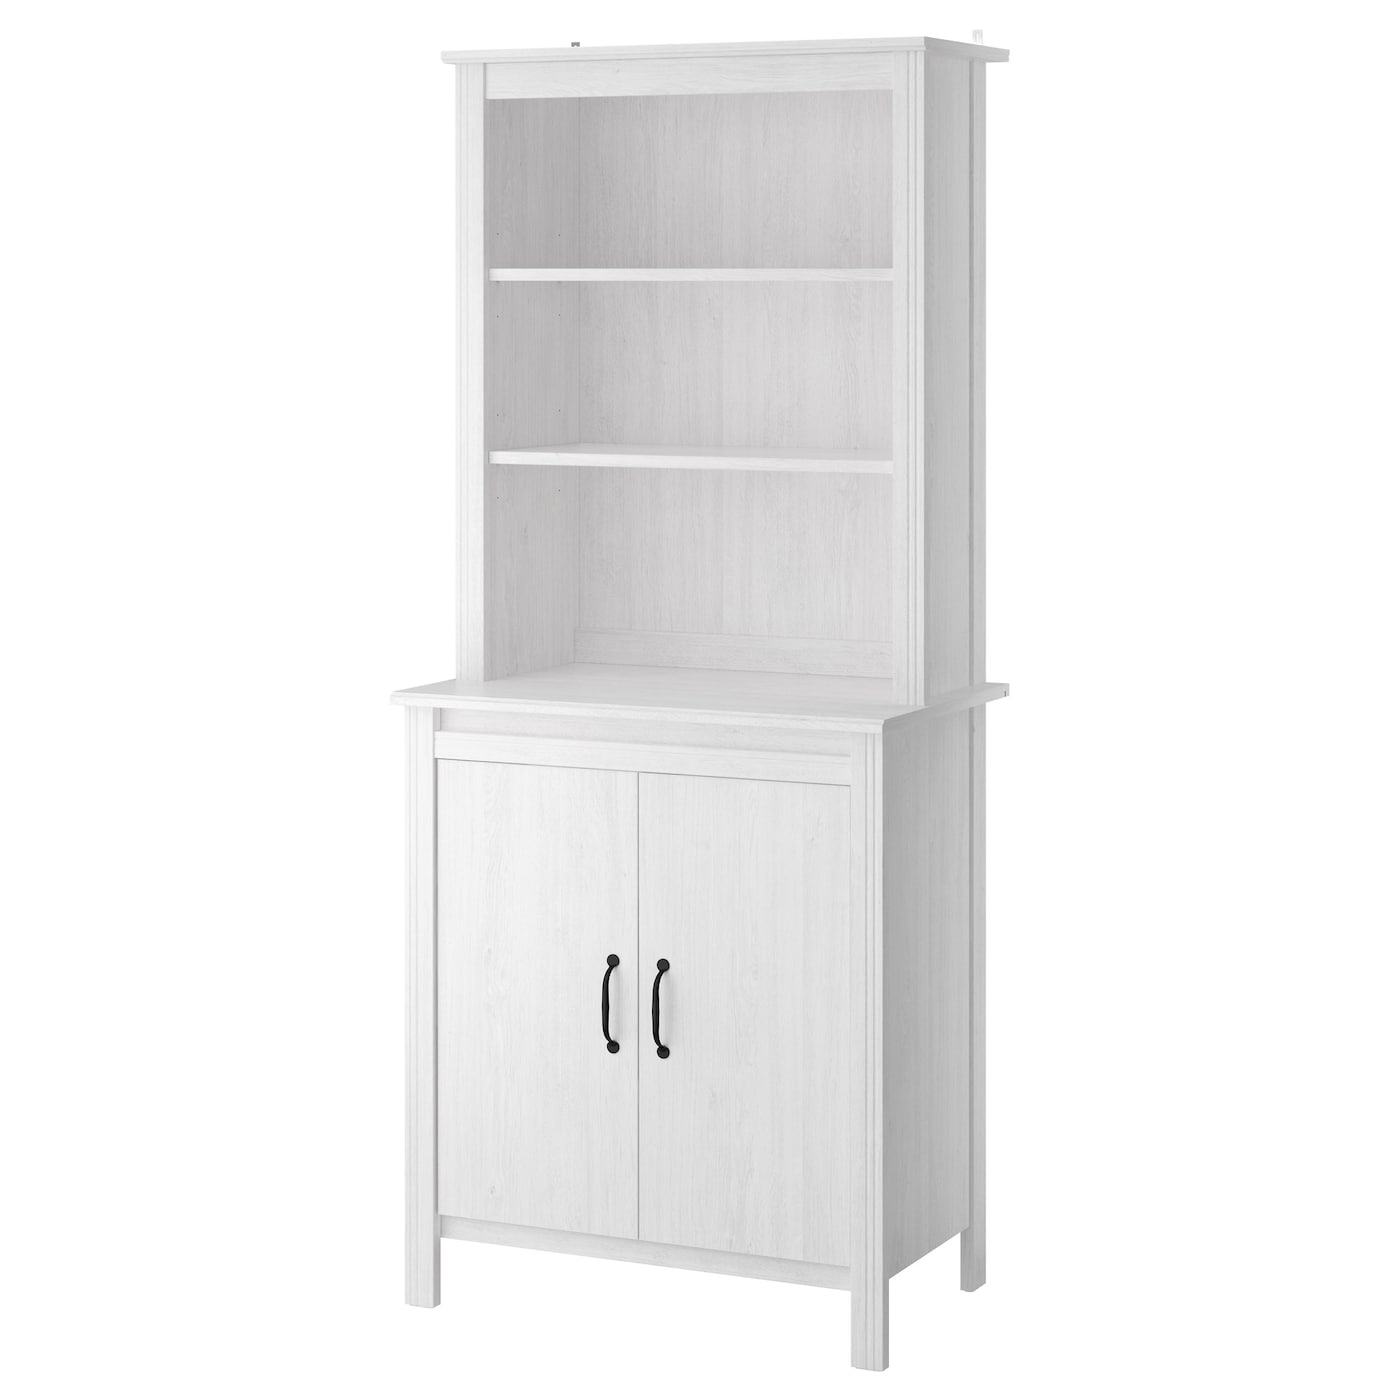 Brusali High Cabinet With Door White 80x190 Cm Ikea